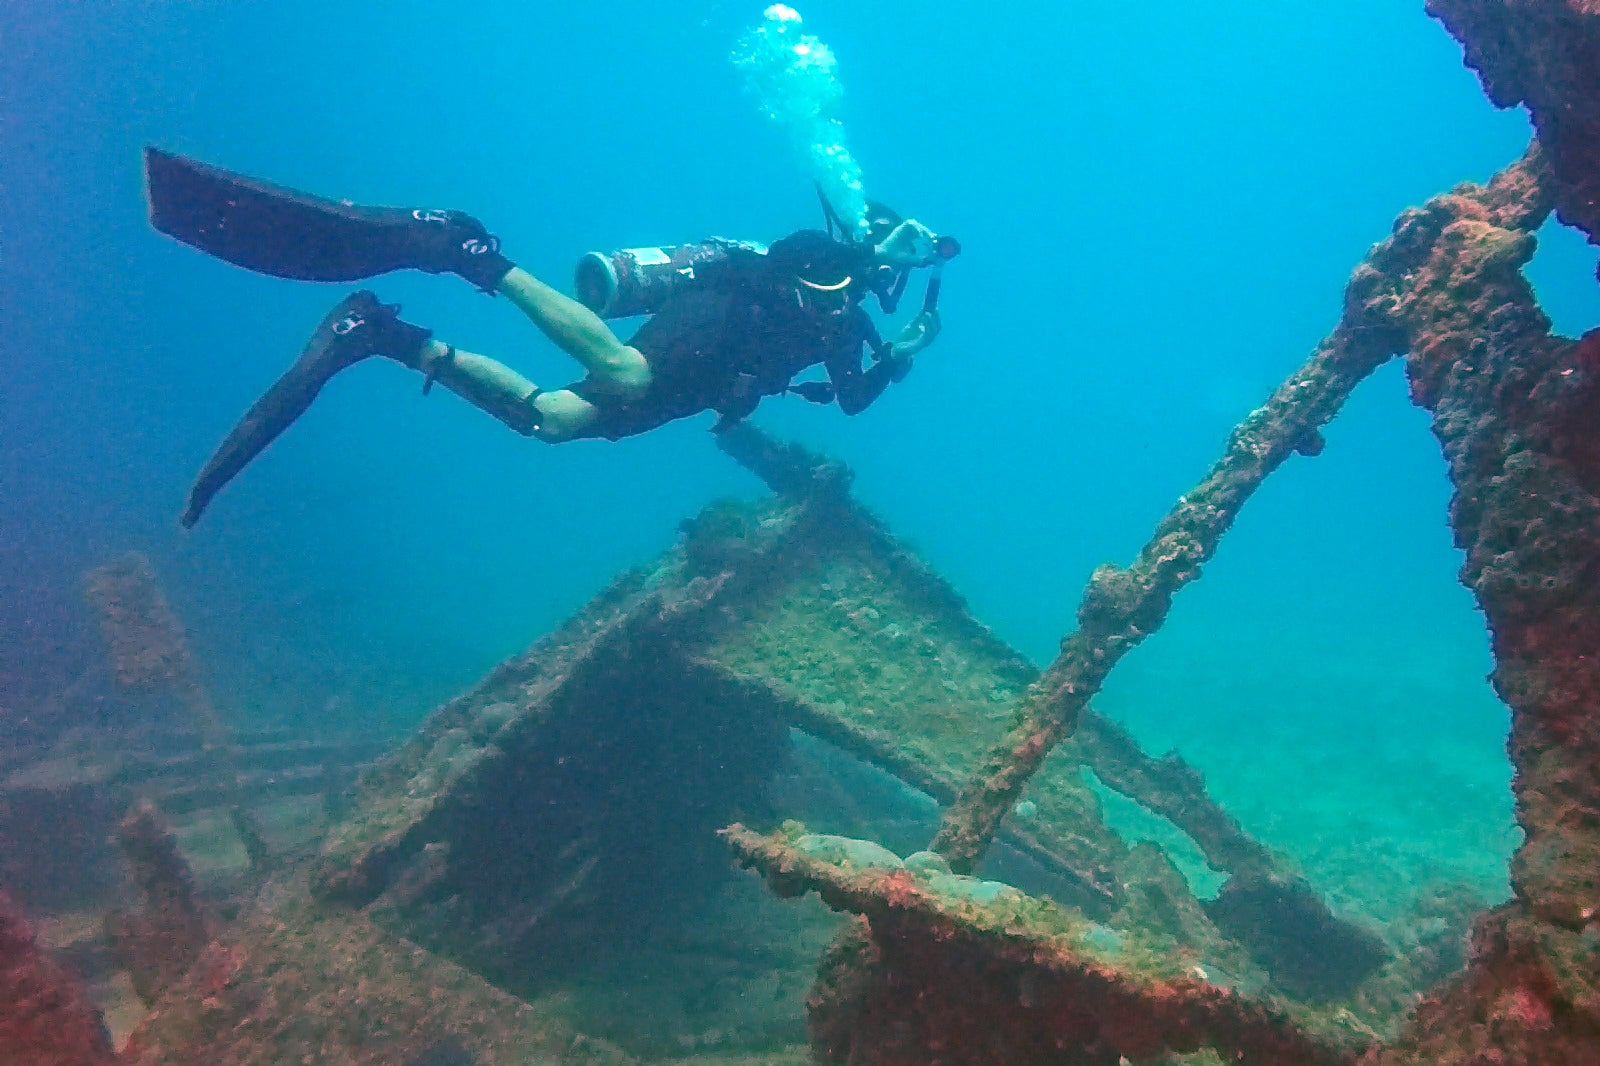 The Shipwrecks Of Coron Bay Snorkeling And Diving Site In